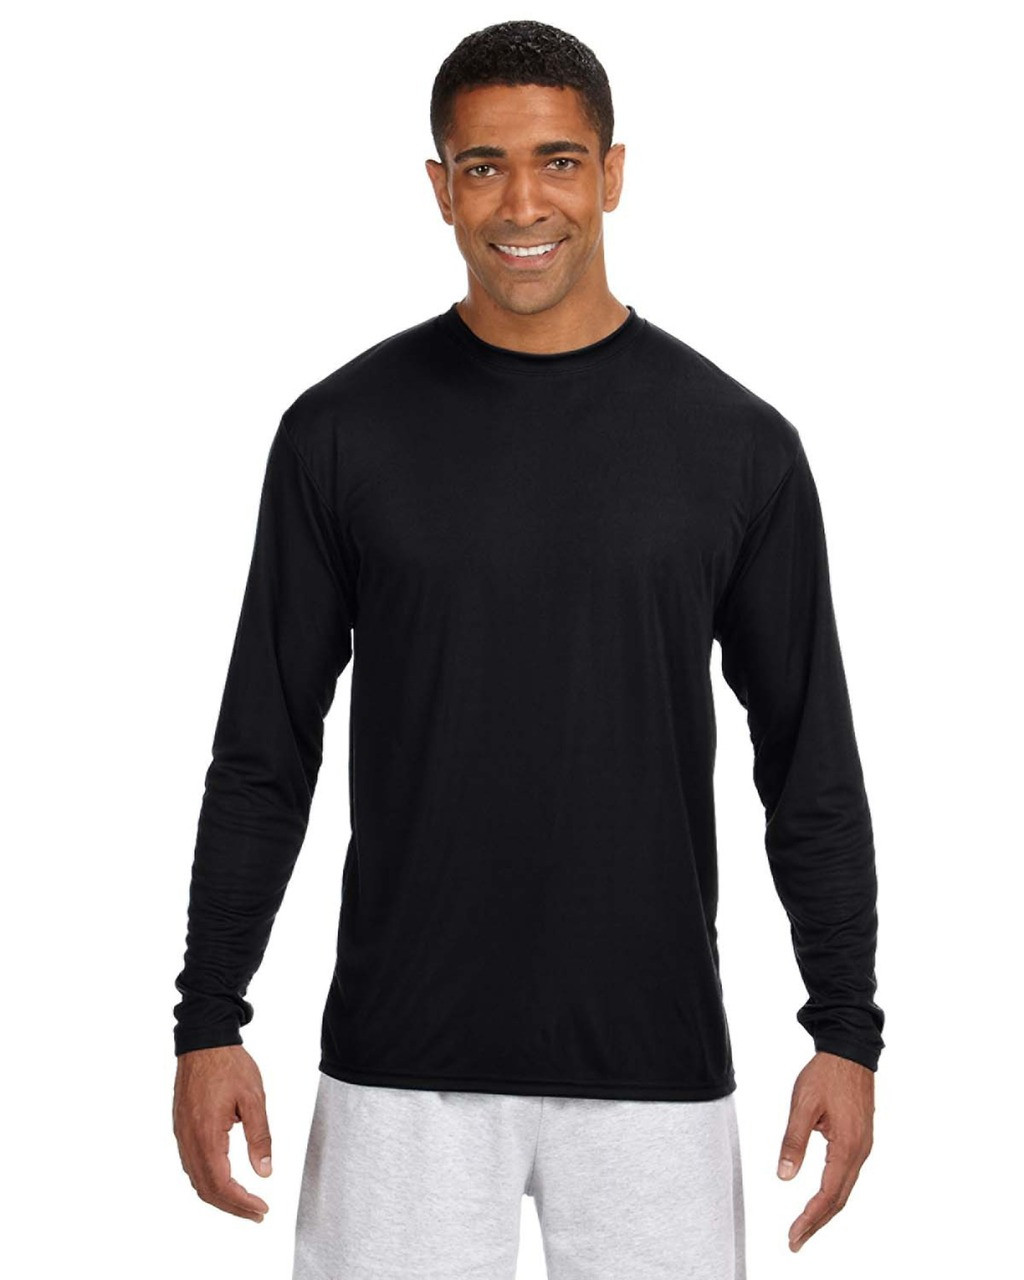 51df7e26 A4 N3165 - Mens Long Sleeve Cooling Performance Crew Neck T-Shirt S-3X ...